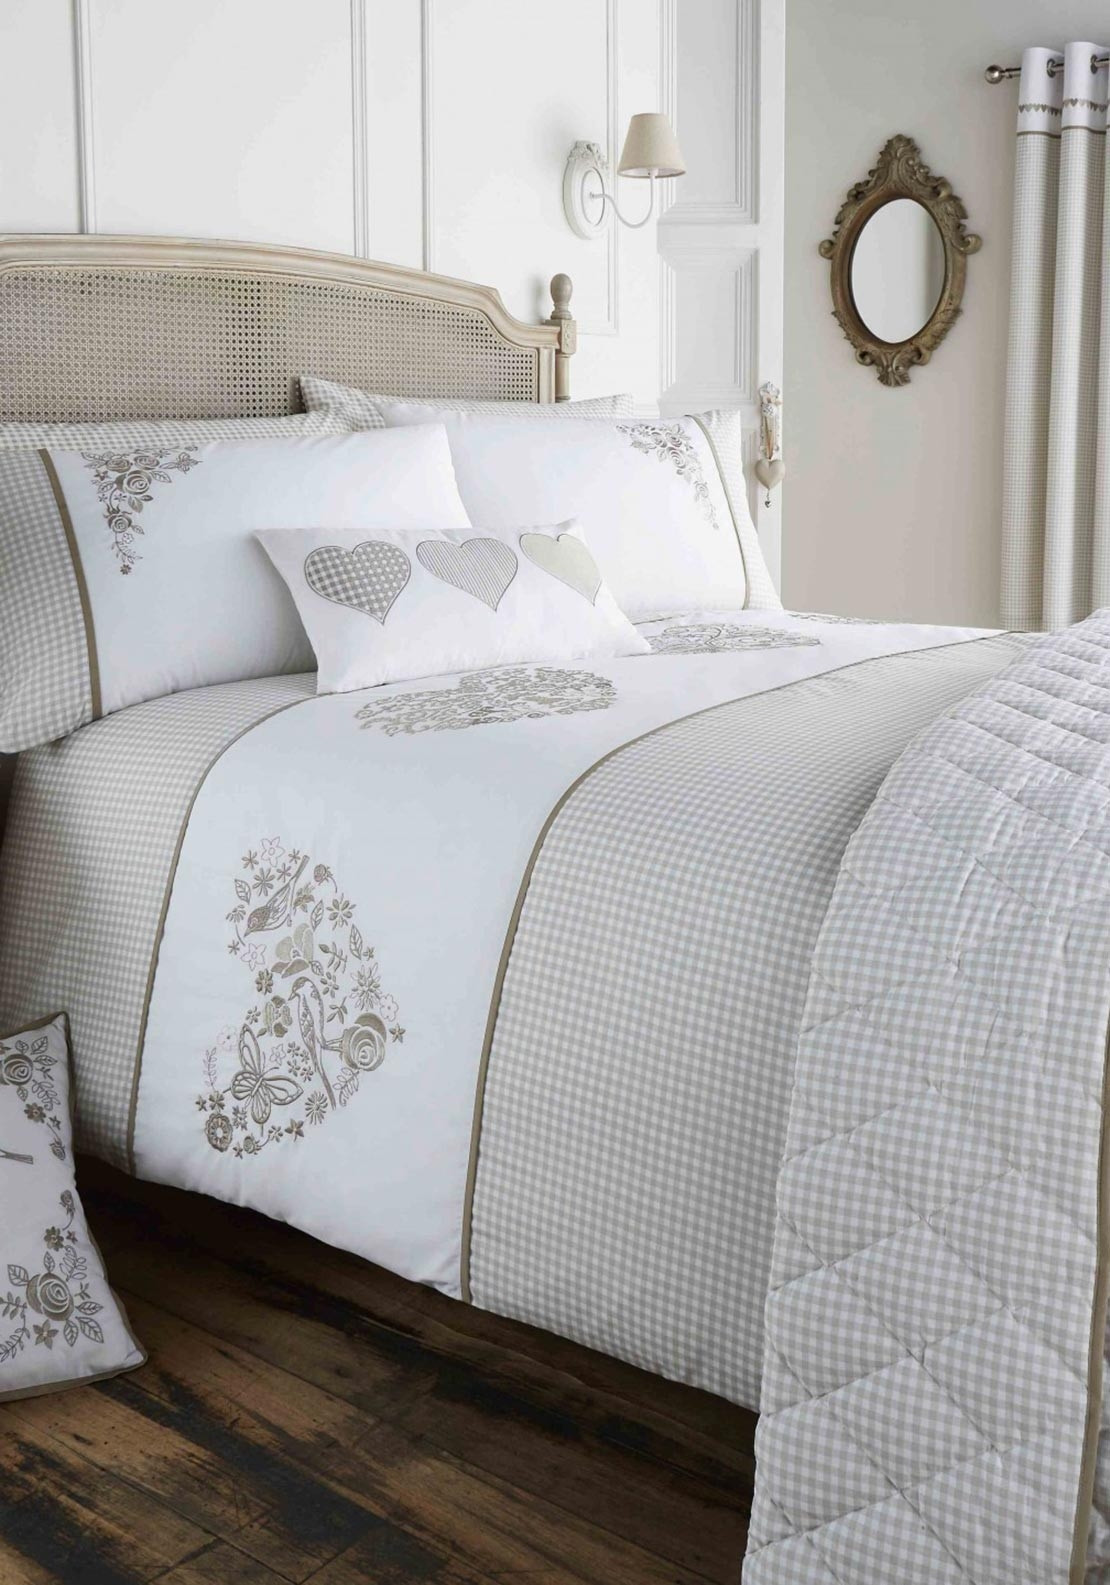 covers gingham stripe le zoom chateau cover pillowcases disc duvet product set